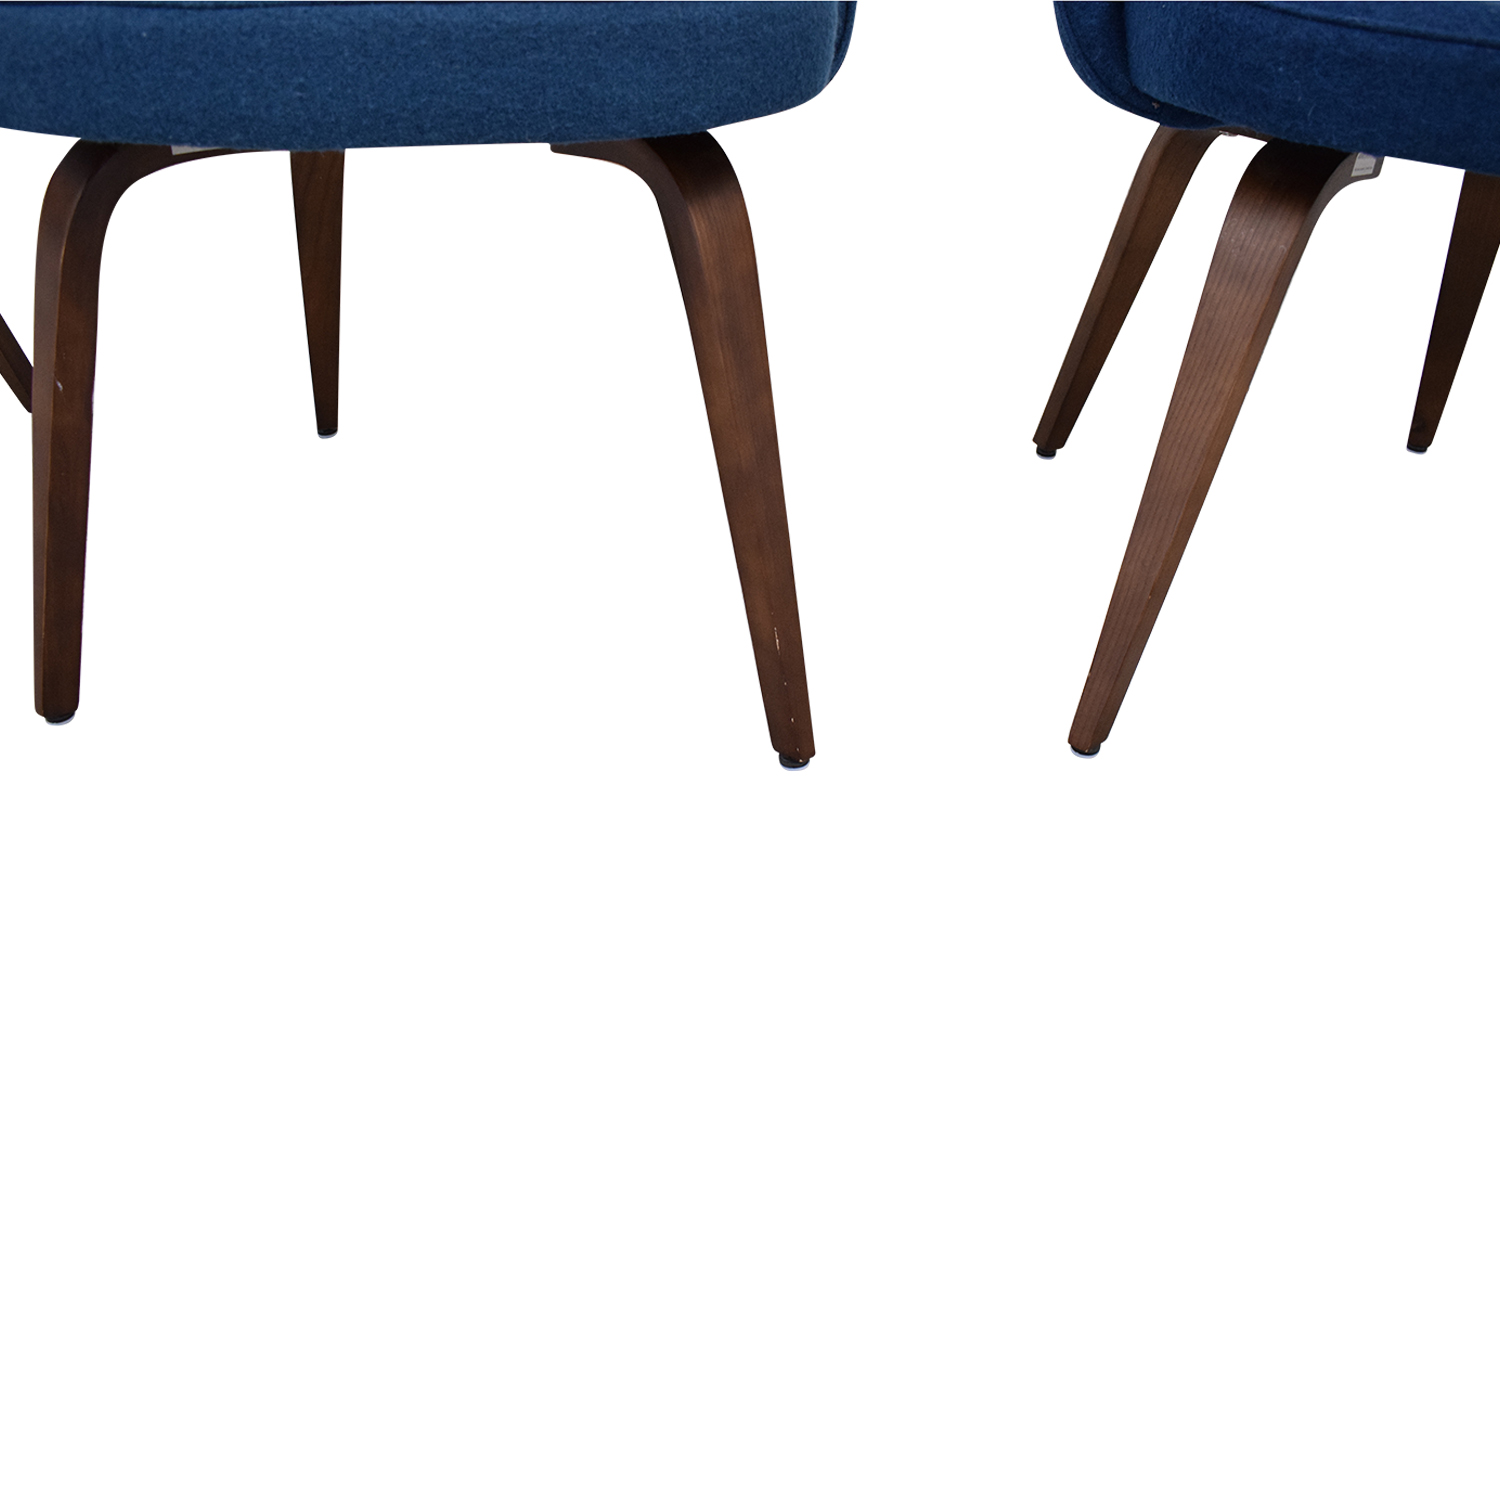 Rove Concepts Rove Concepts Executive Side Chairs blue & brown